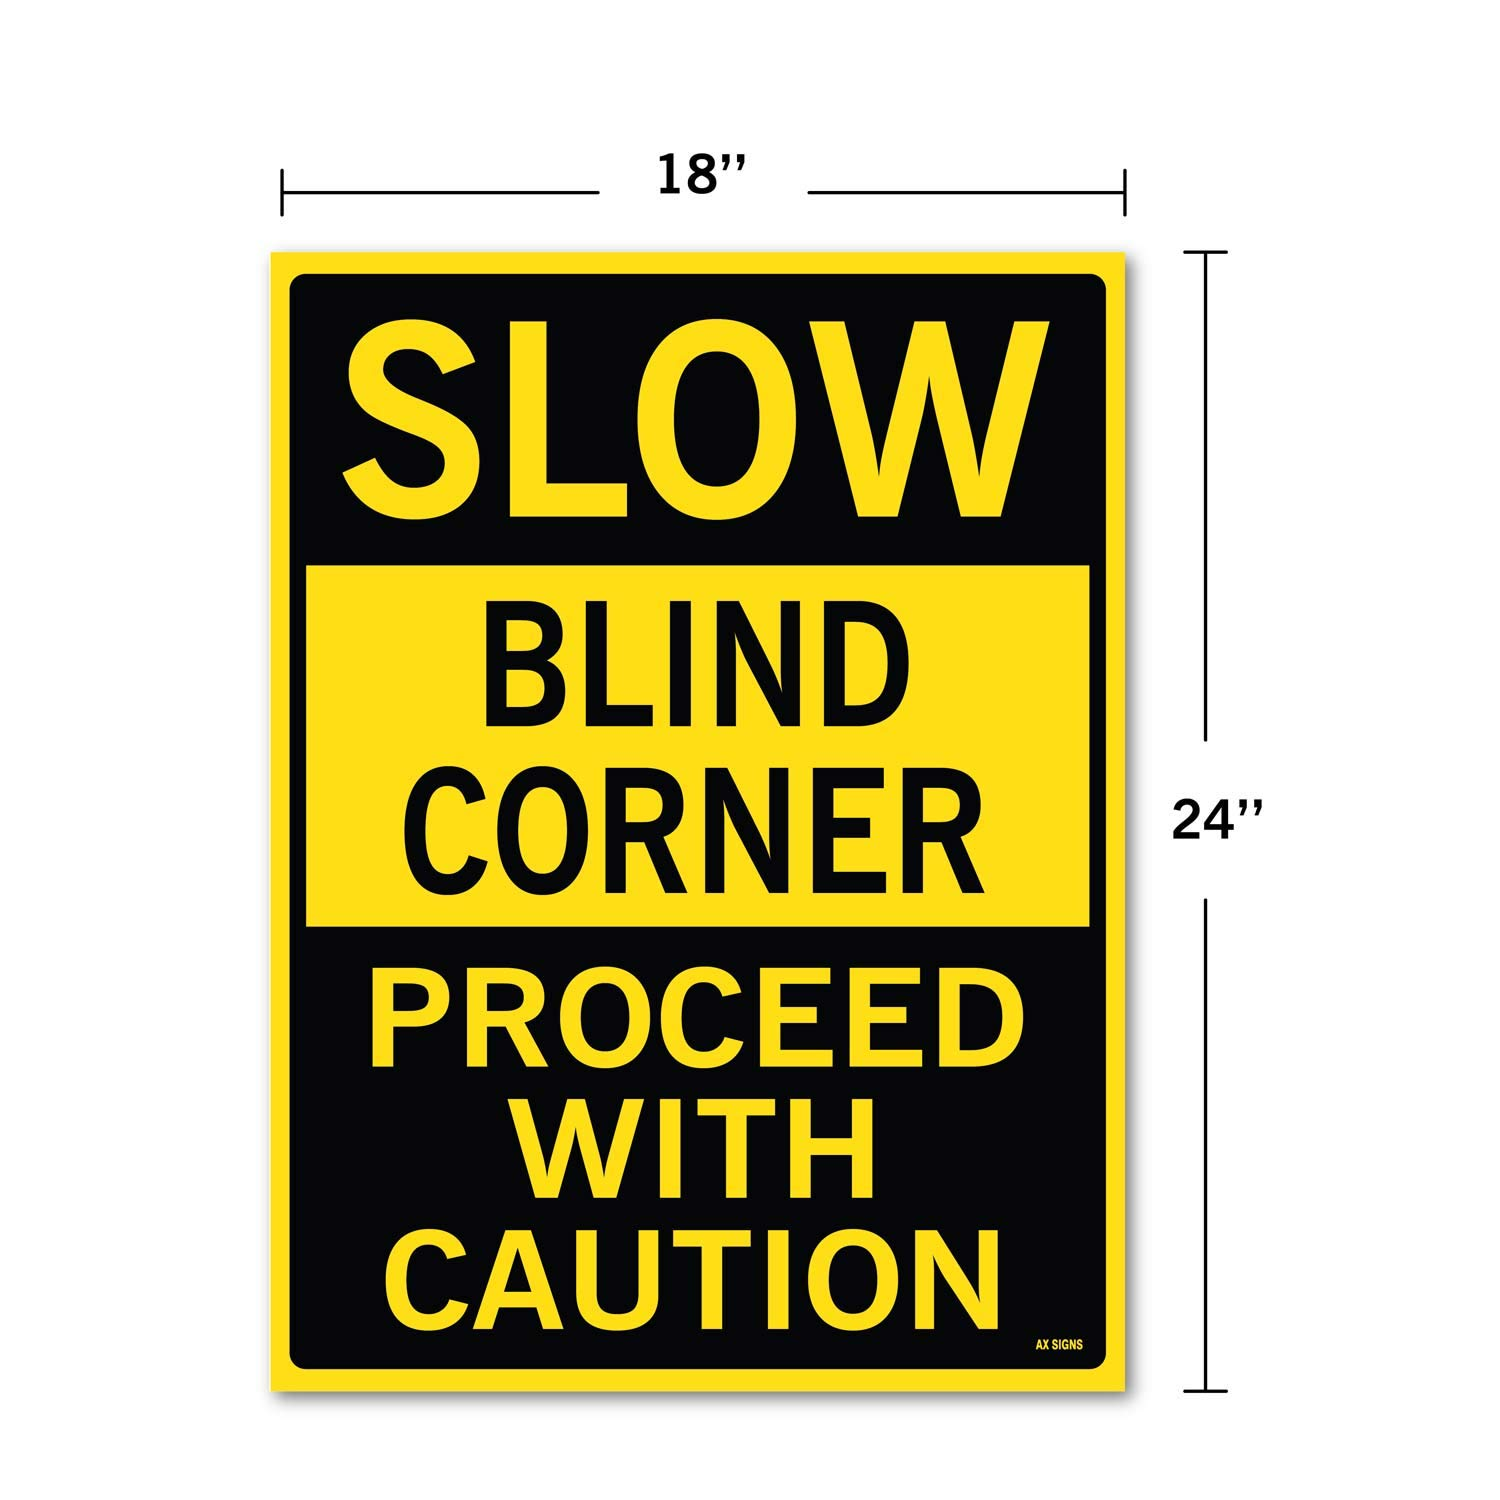 Slow Blind Corner Proceed with Caution 24 high x 18 wide Rust Free UV Protected Waterproof Indoor and Outdoor Use Self Adhesive Vinyl Sticker Black on Yellow